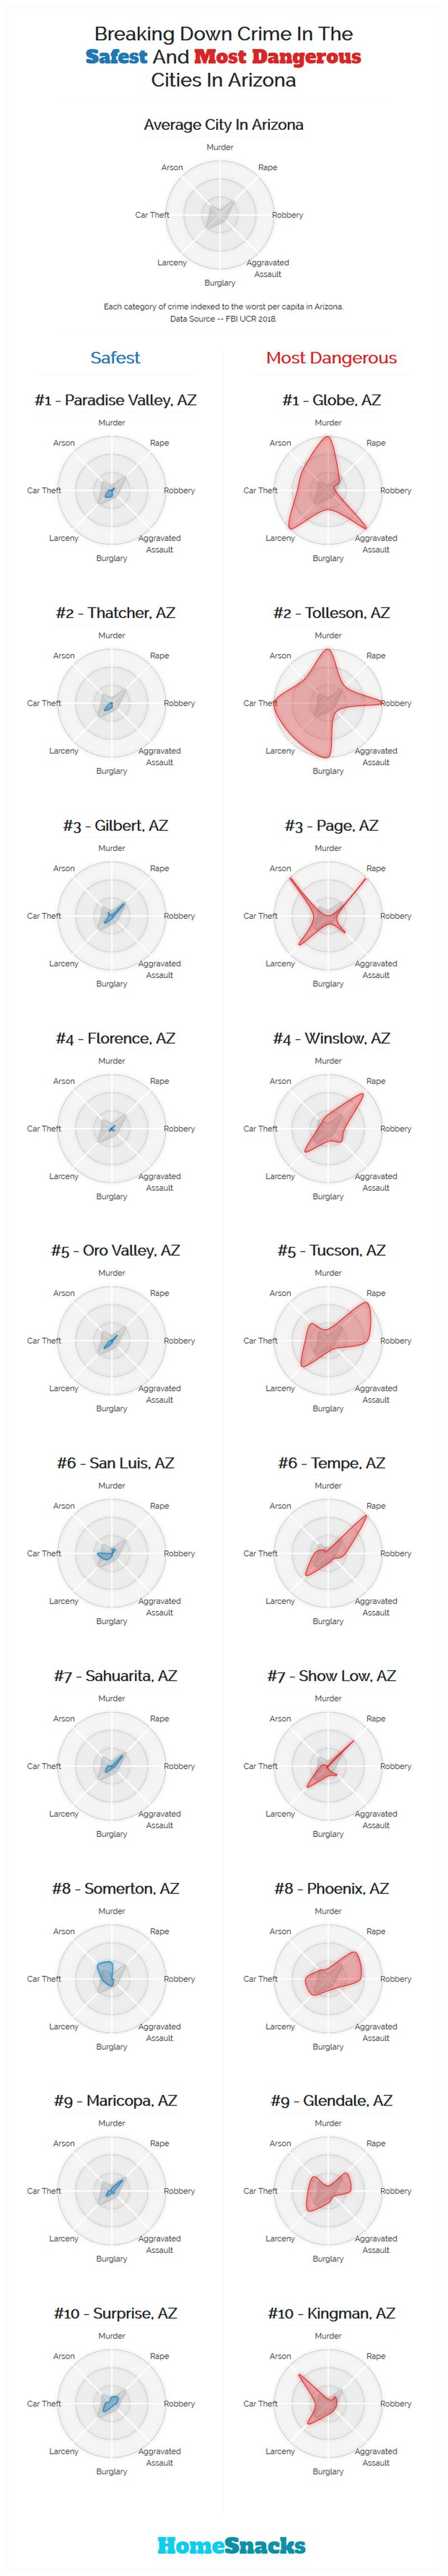 Safest Cities in Arizona Breakdown